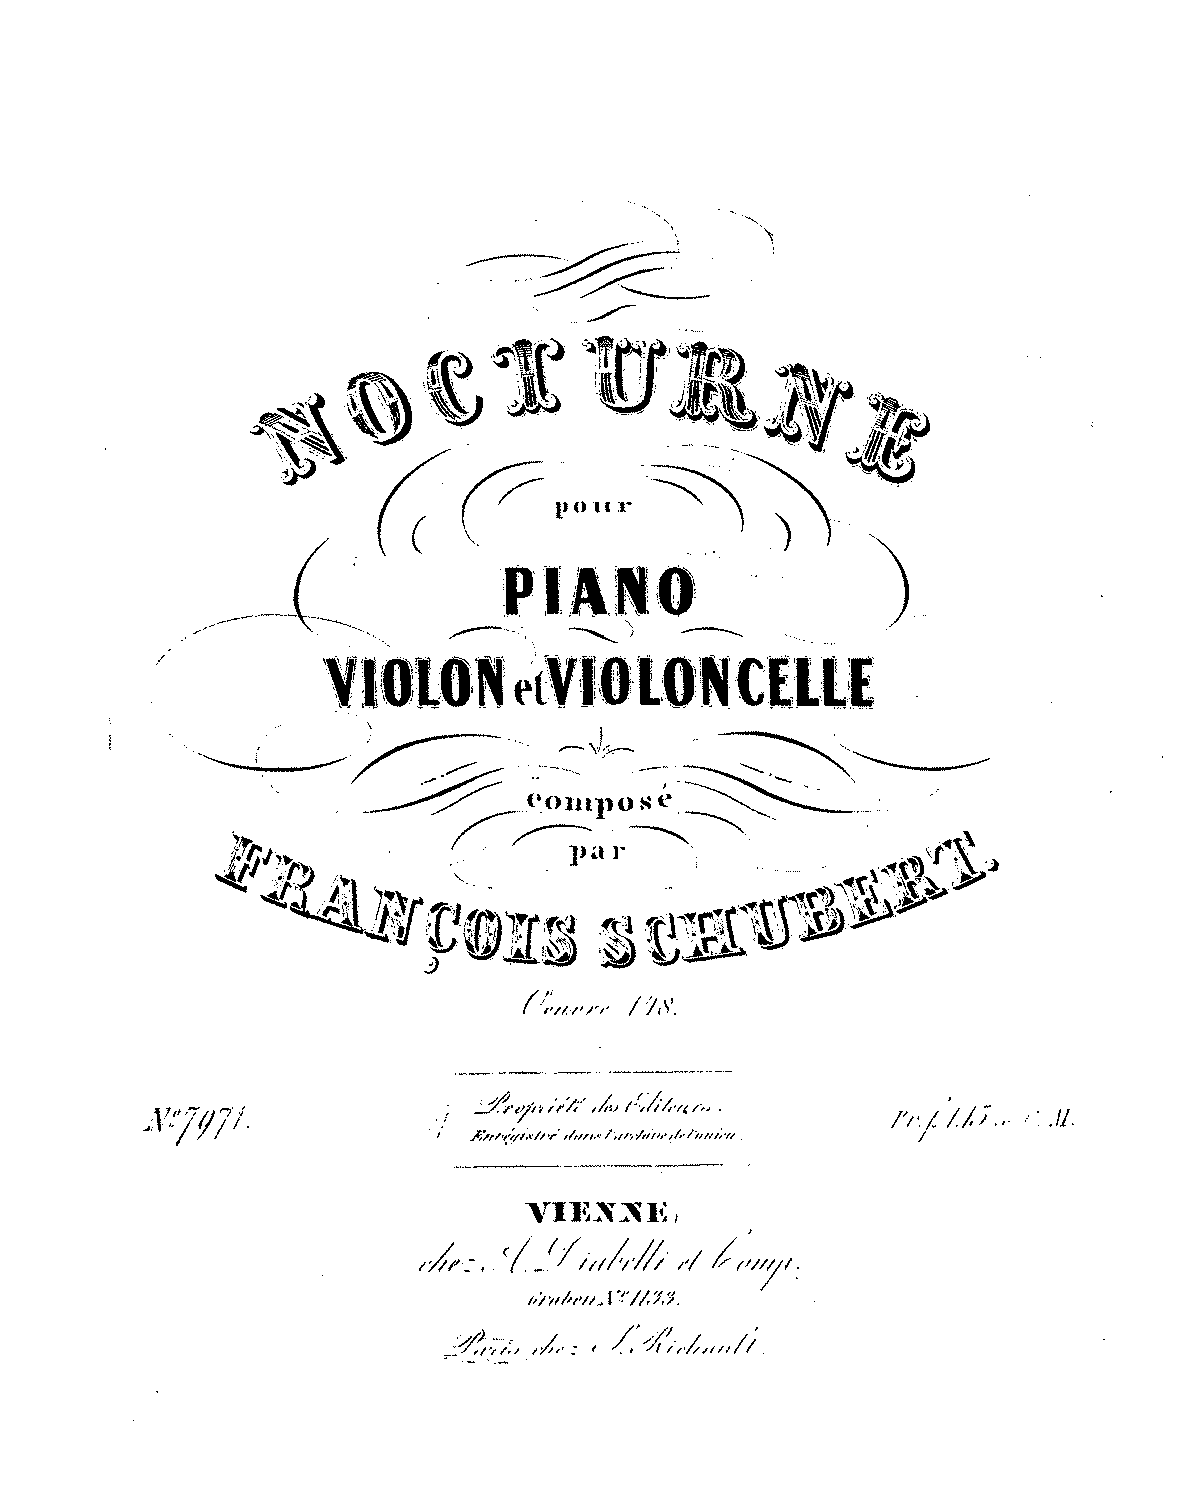 PMLP10139-Schubert - Nocturne for Piano Trio (Op148) parts.pdf